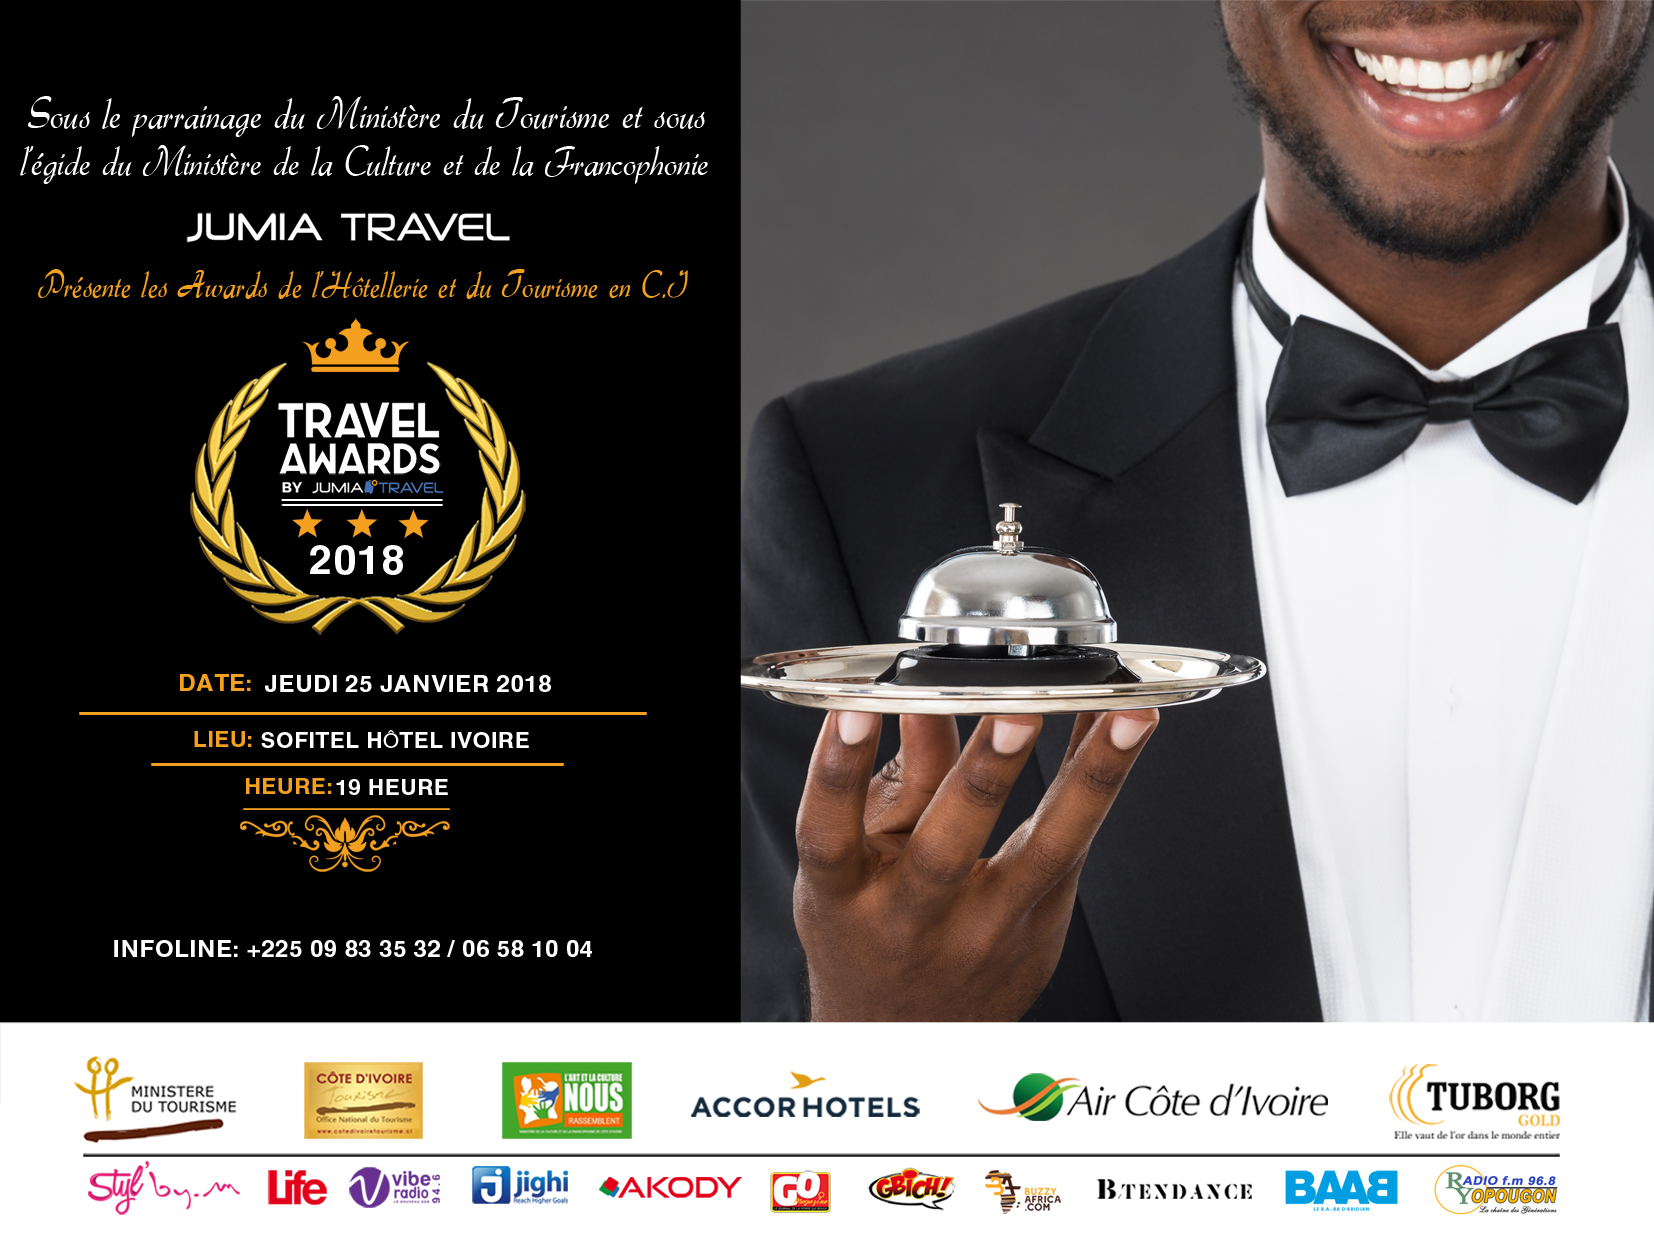 visuel 1 JUMIA TRAVEL AWARDS